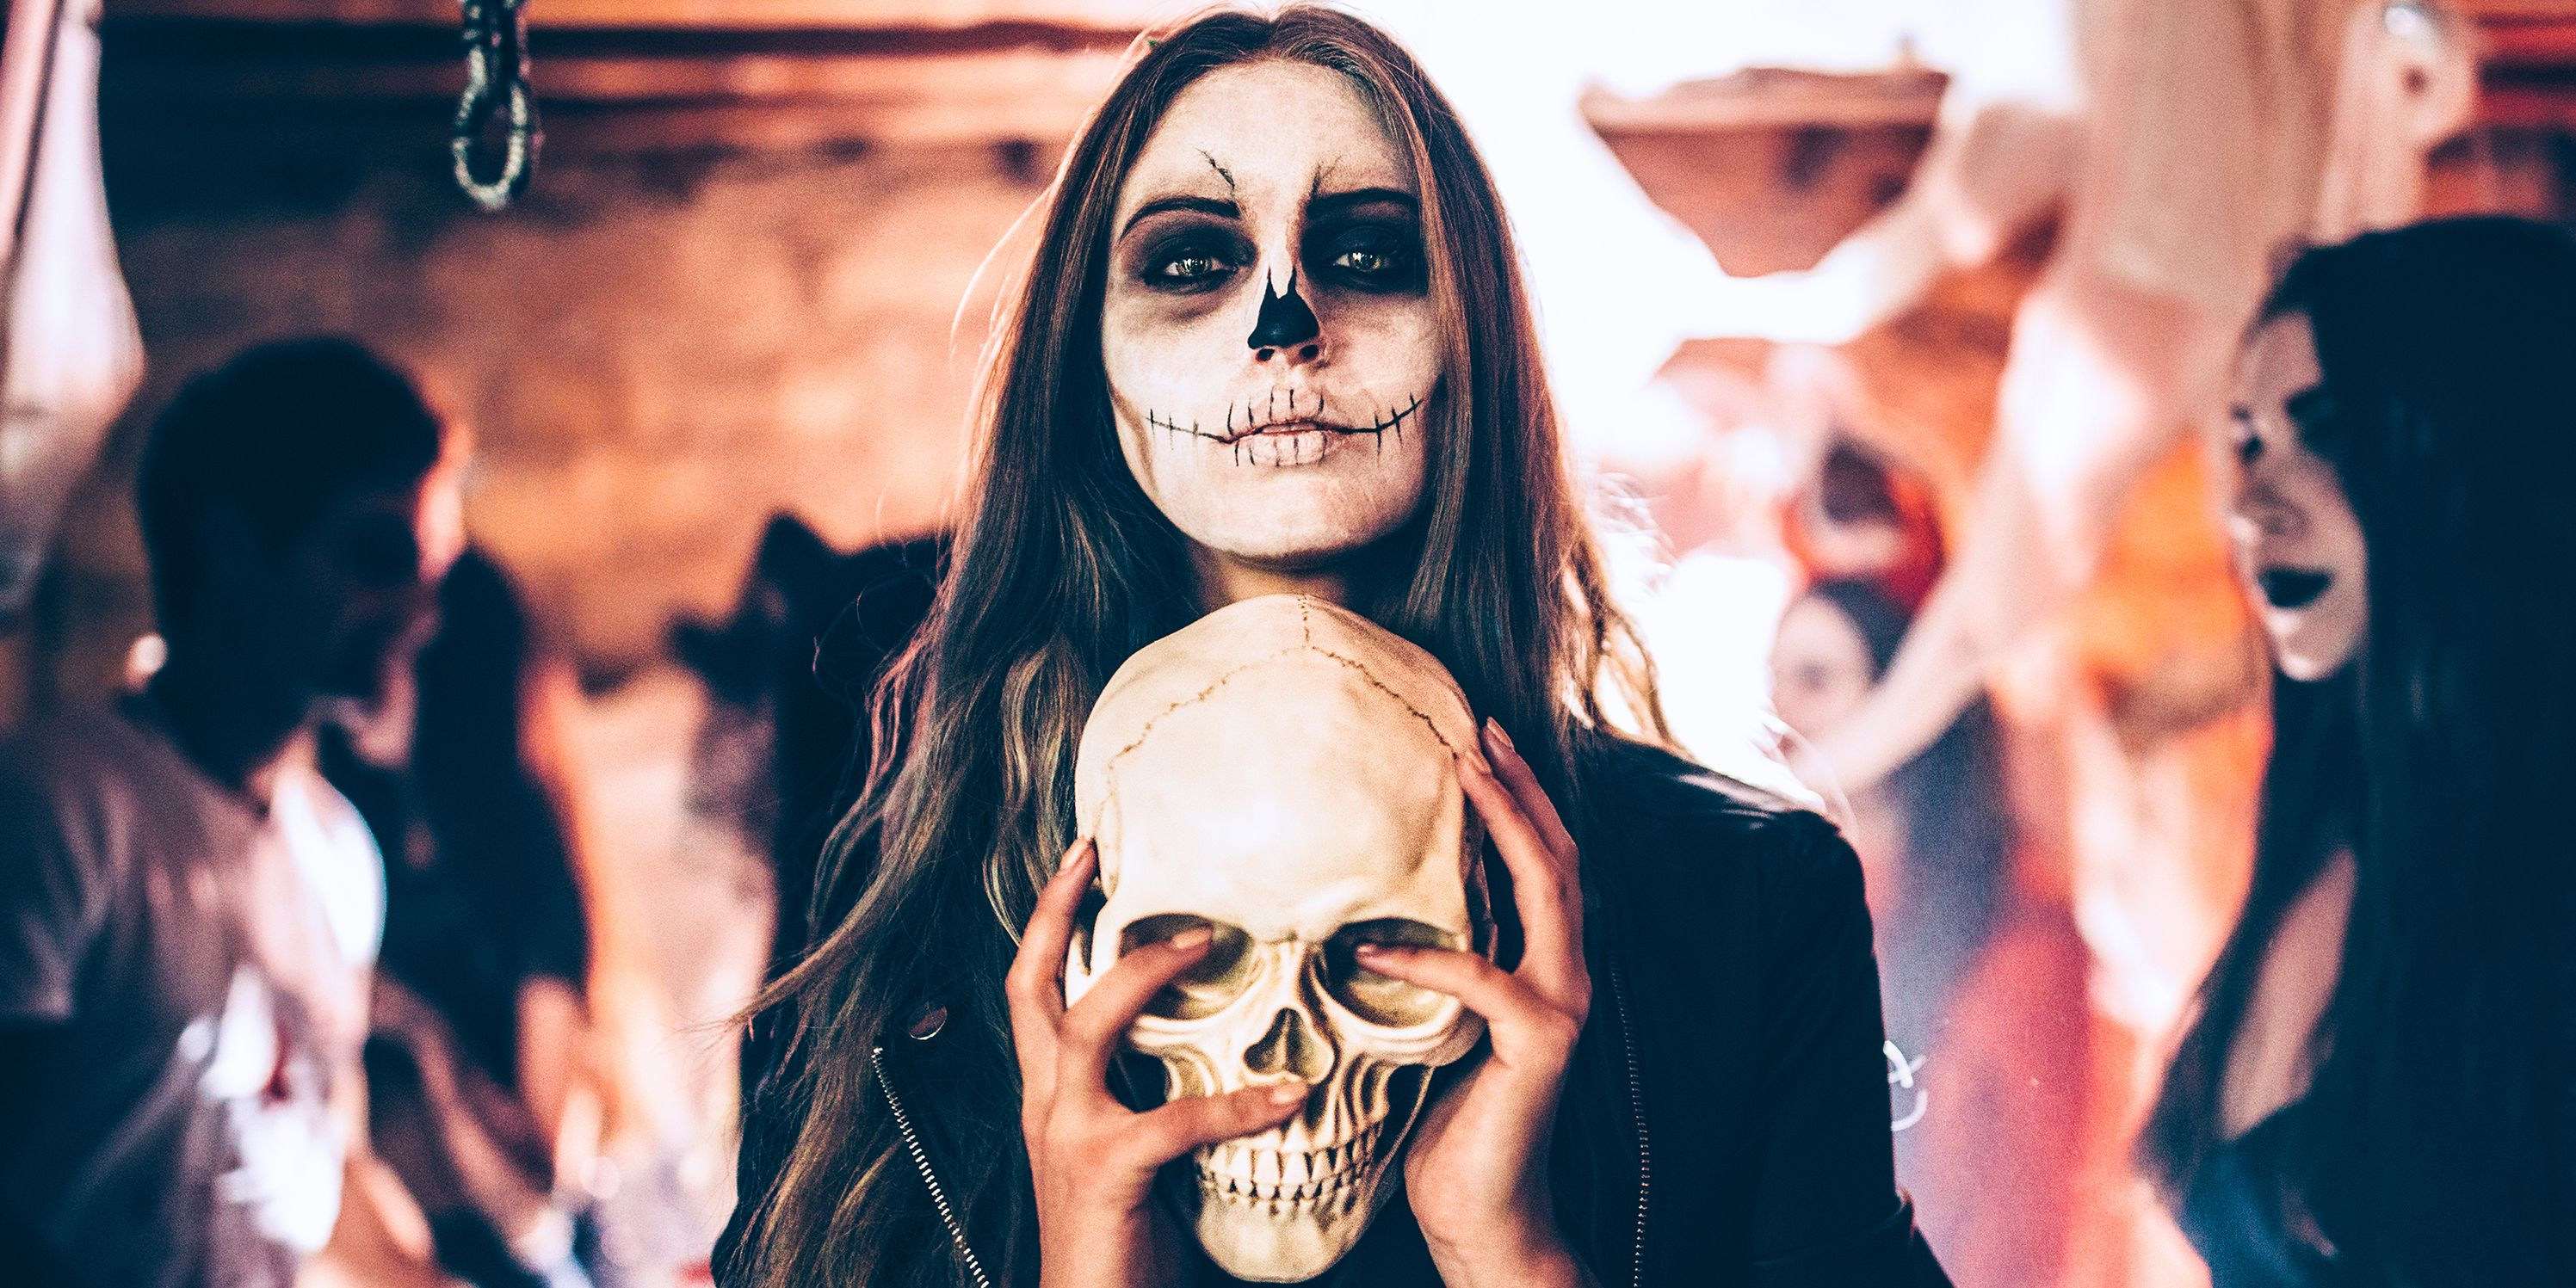 11 Spookiest Halloween Events In London, From Brunches To Festivals In The Woods